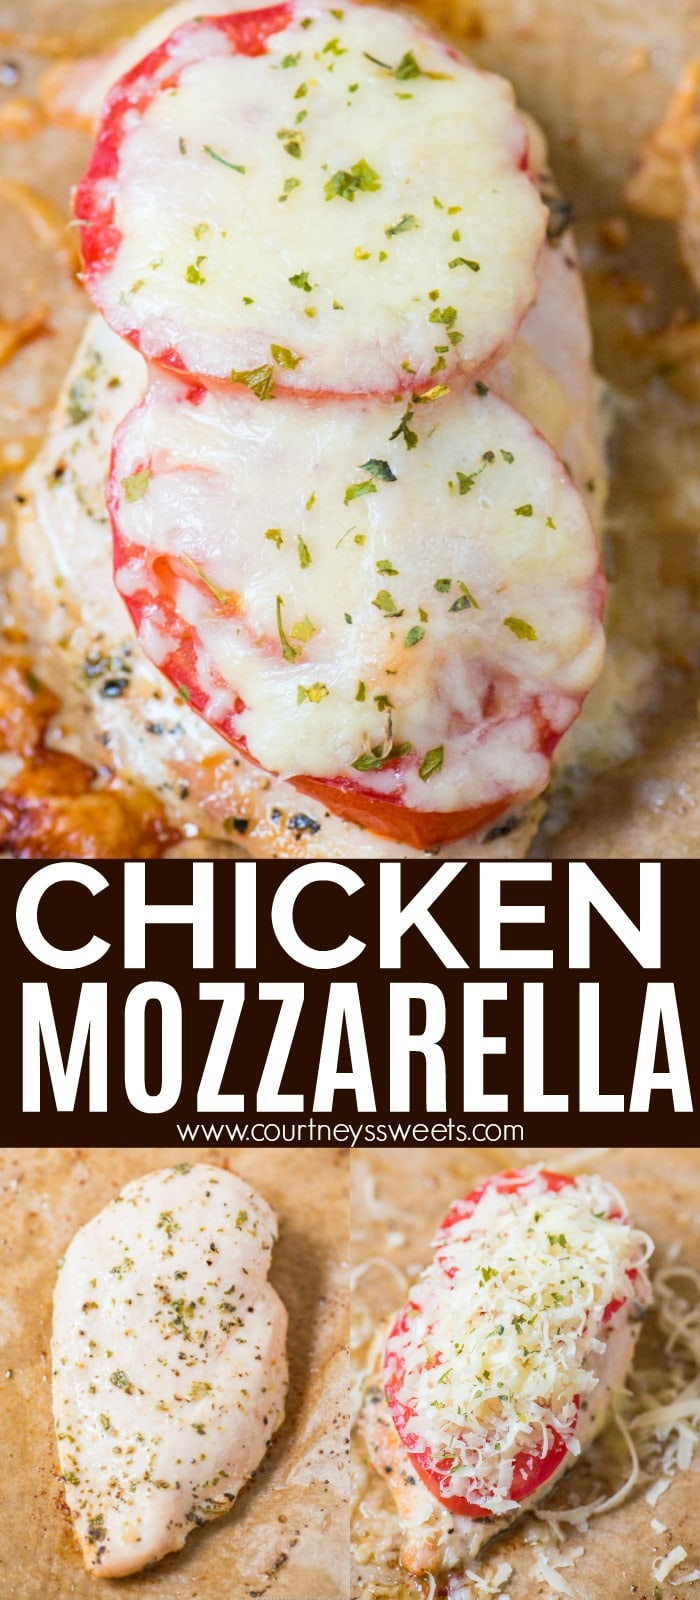 Chicken Mozzarella is an easy chicken breast recipe using Italian seasonings, freshly grated mozzarella, and juicy garden tomatoes.